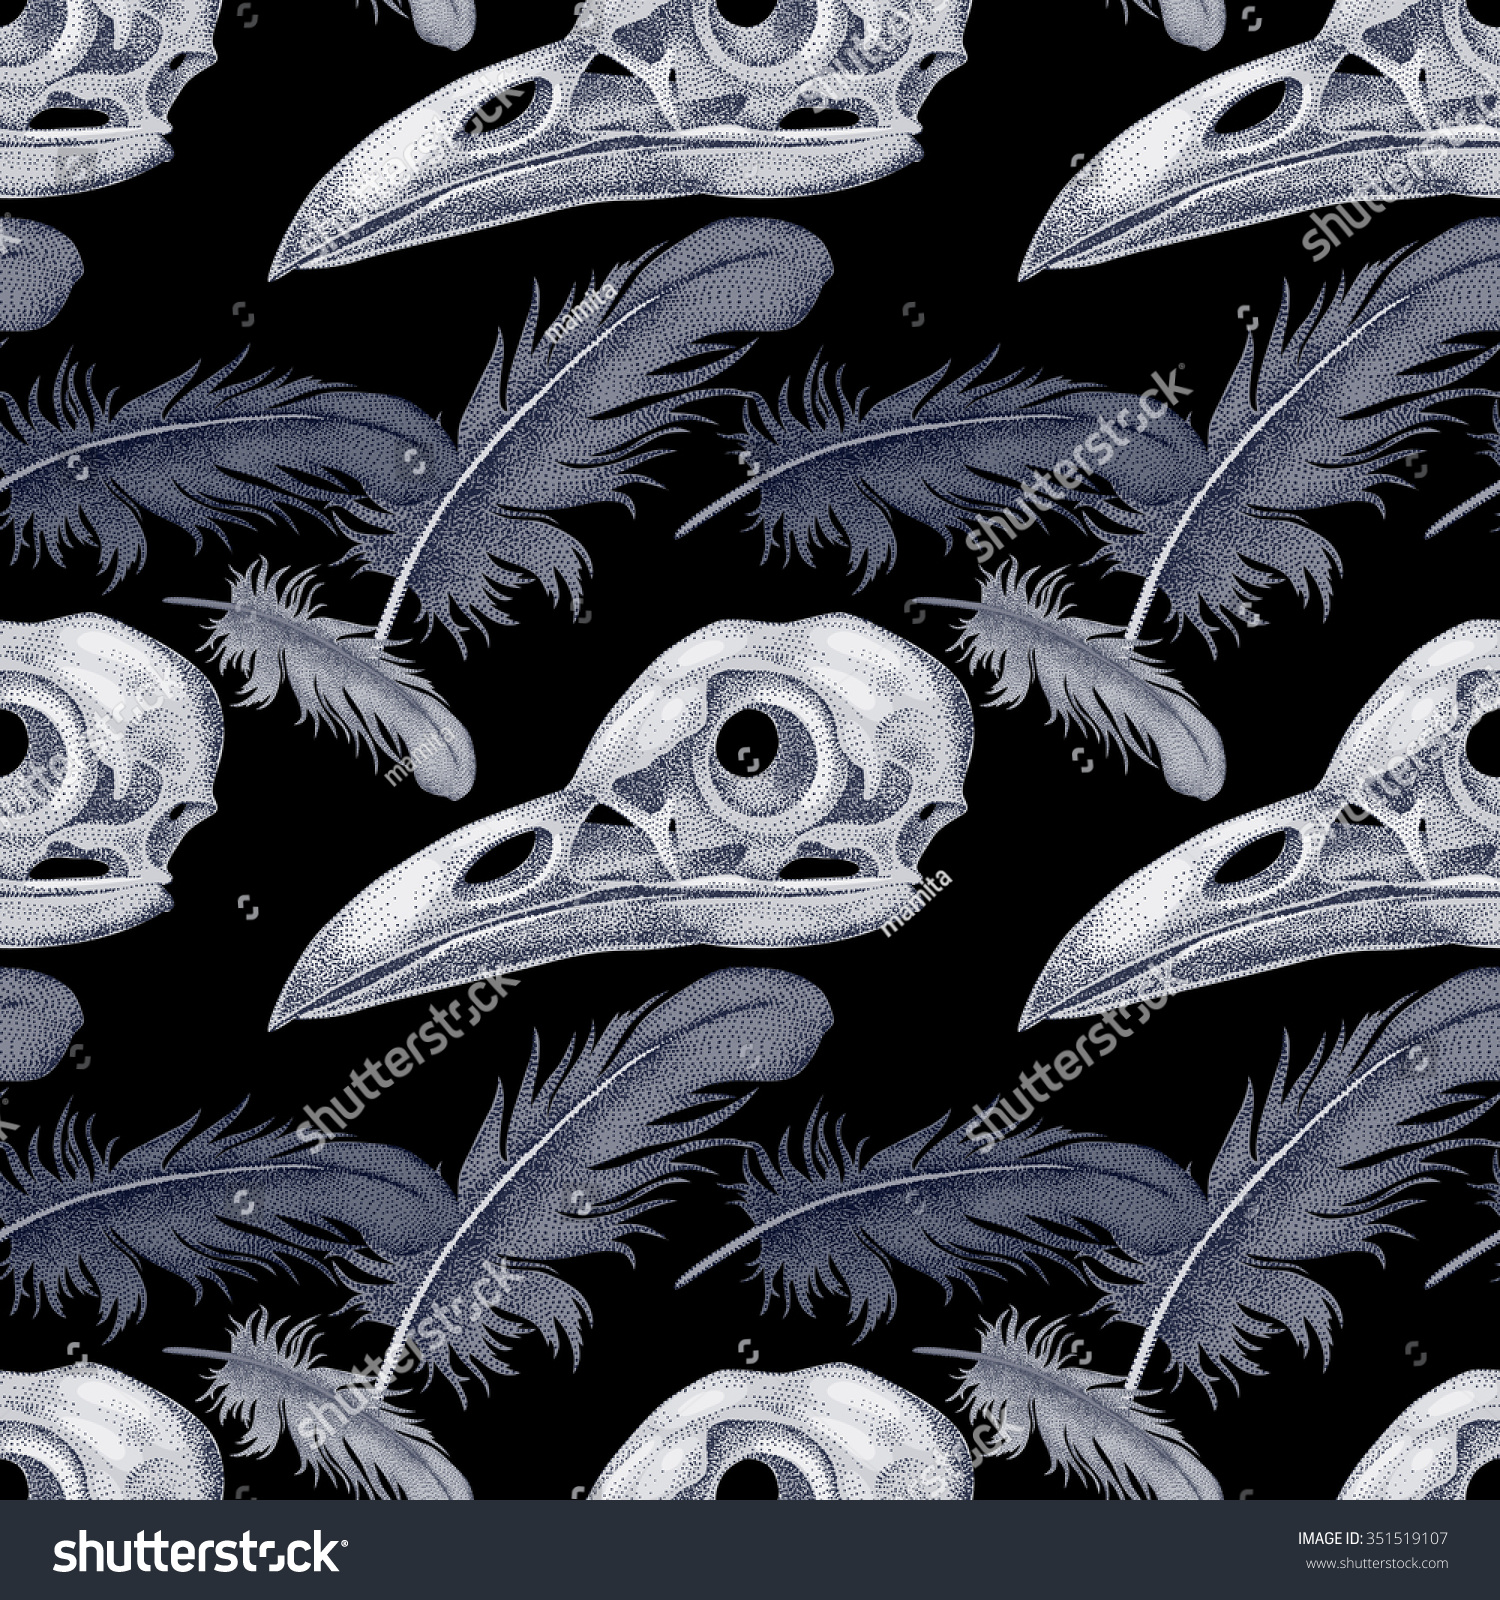 Vector seamless pattern skulls raven feathers stock vector vector seamless pattern with skulls and raven feathers black and white buycottarizona Gallery